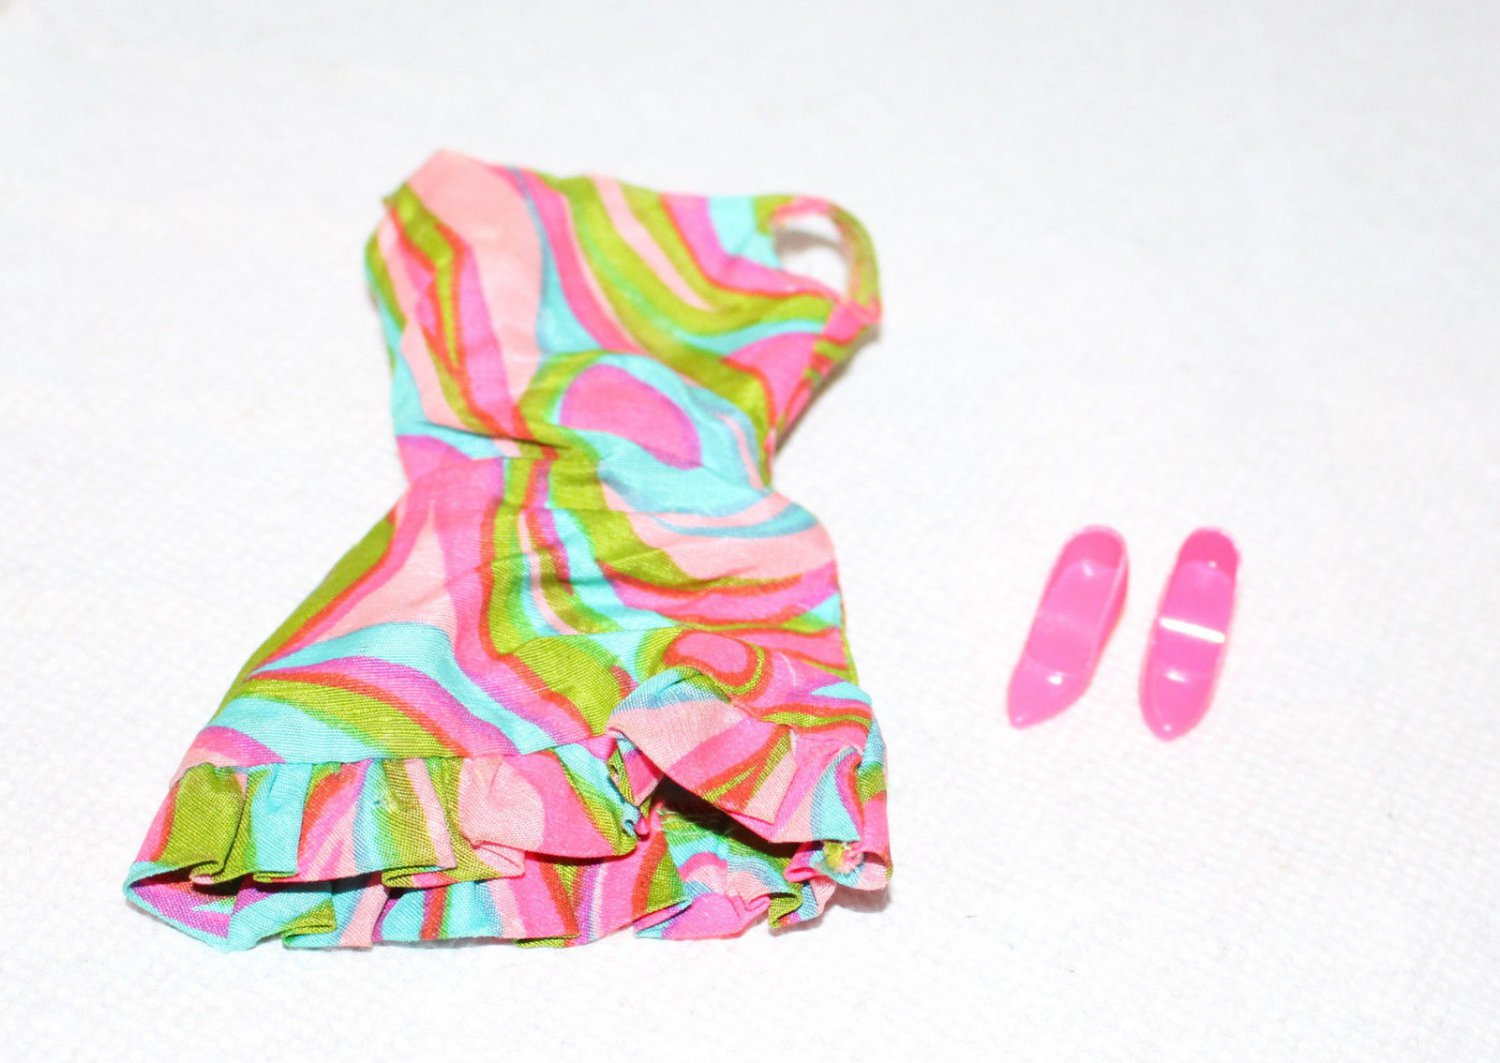 Barbie Swirly Que 1822 Print Dress & Hot Pink CT Shoes